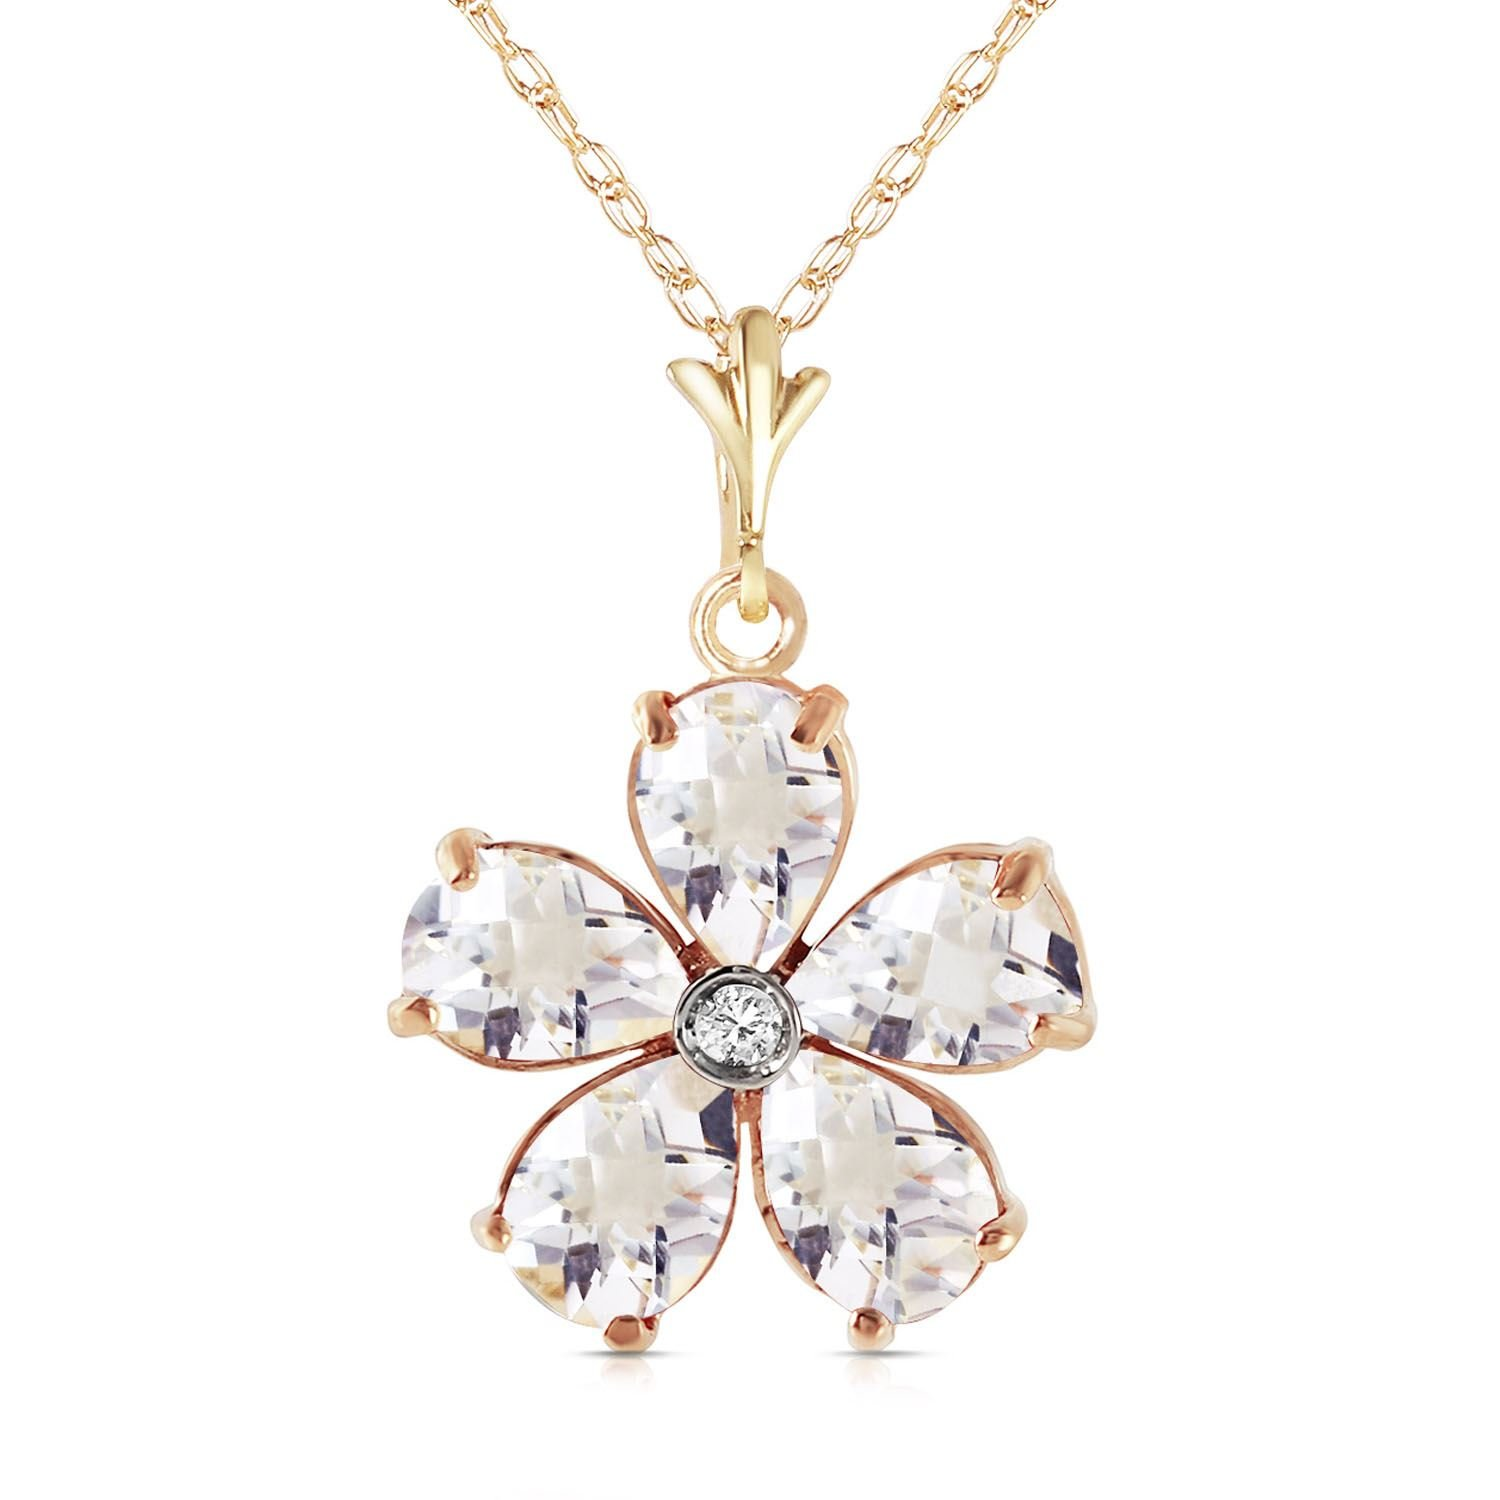 ALARRI 2.22 Carat 14K Solid Gold Heart Is Awake White Topaz Necklace with 20 Inch Chain Length